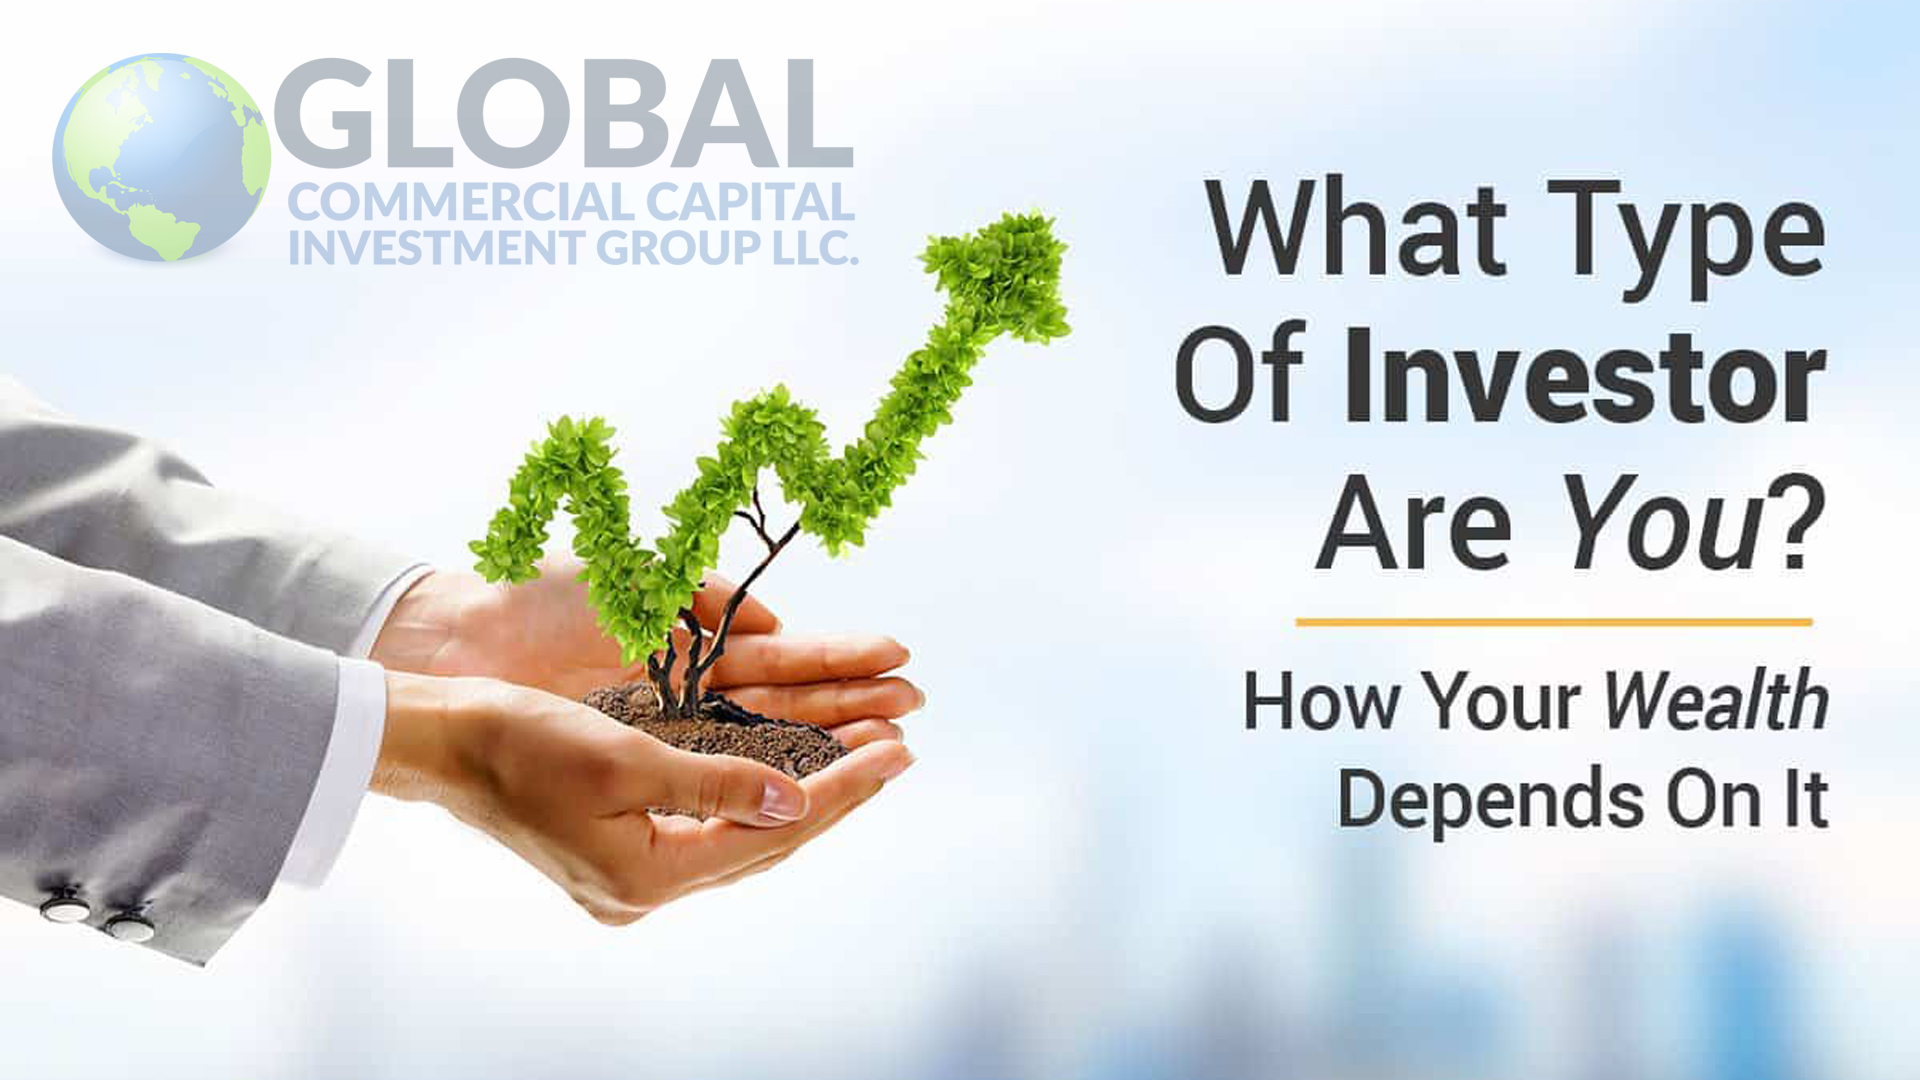 3 Types of Investors – Which One Are You? Take This Test!